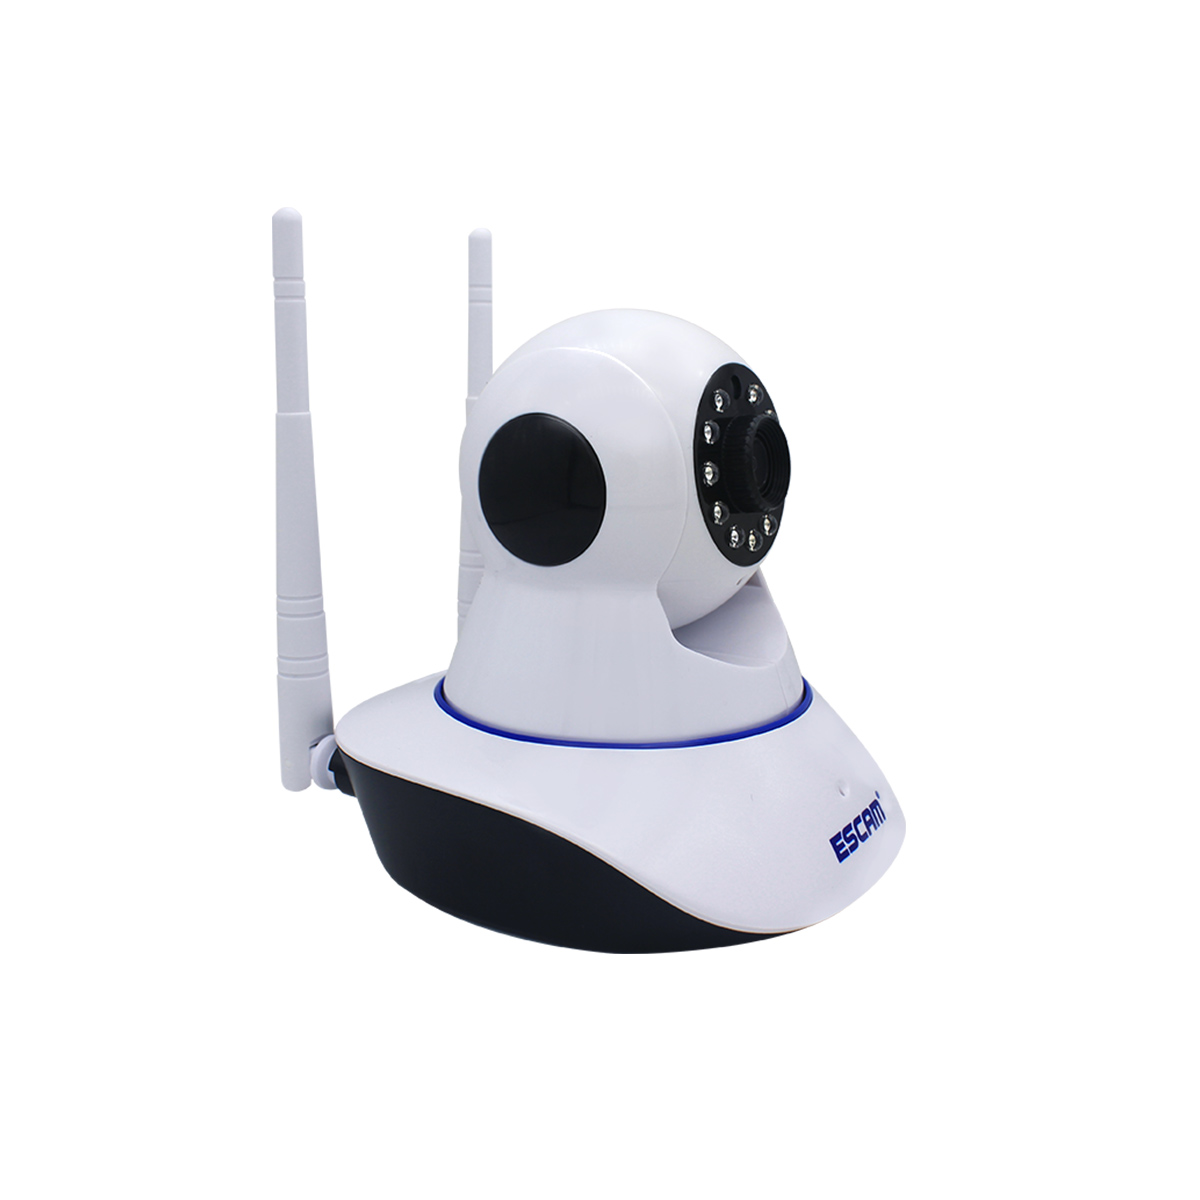 ESCAM G01 HD 1080P 200WDual Antenna 1080P Pan/Tilt WiFi IR IP Camera Support ONVIF Two Way Talk Night Vision EU Plug